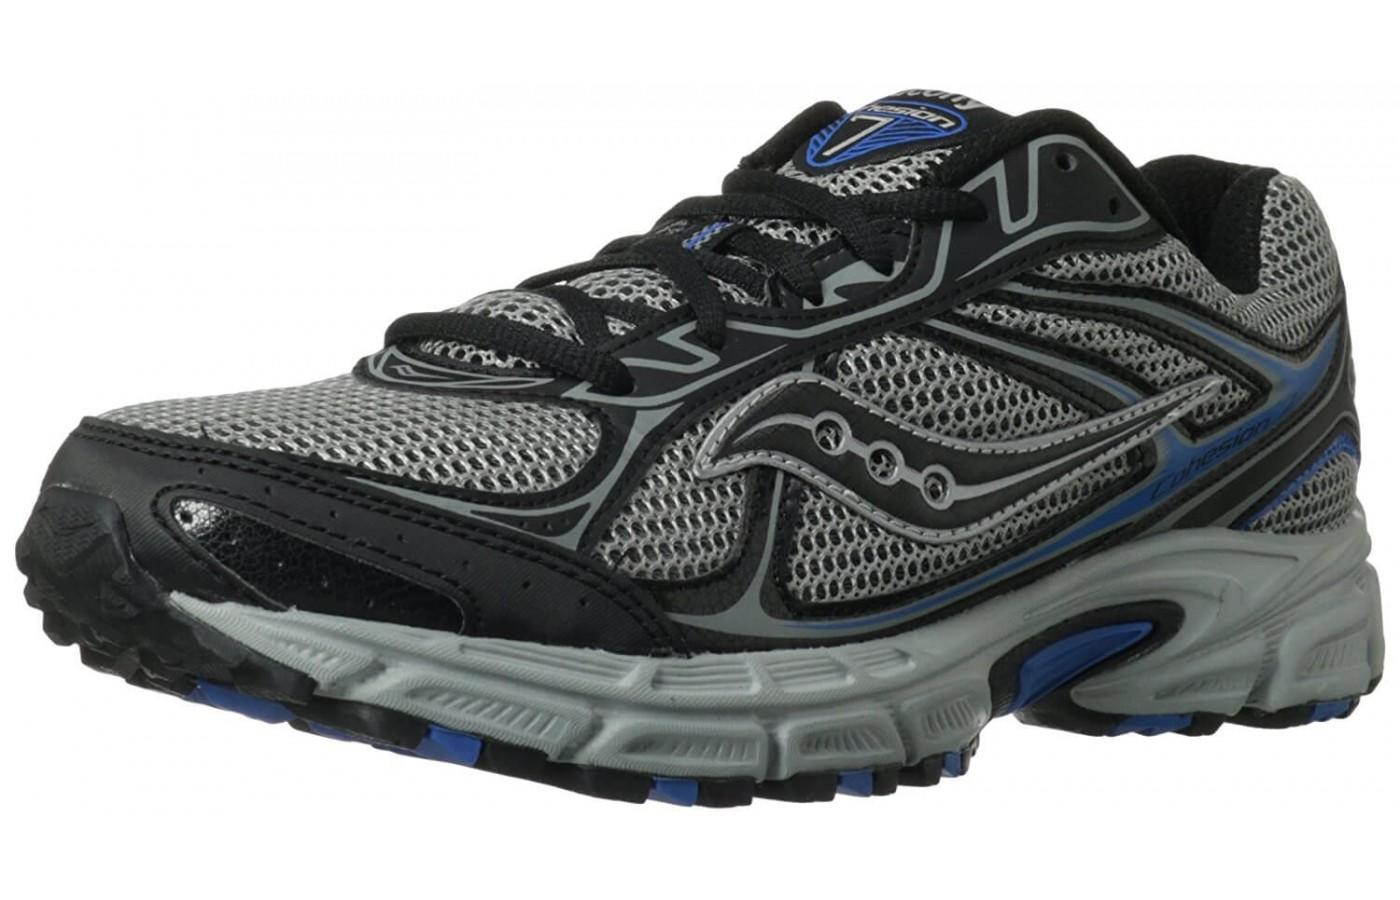 The classic look of the men's Saucony Cohesion TR7